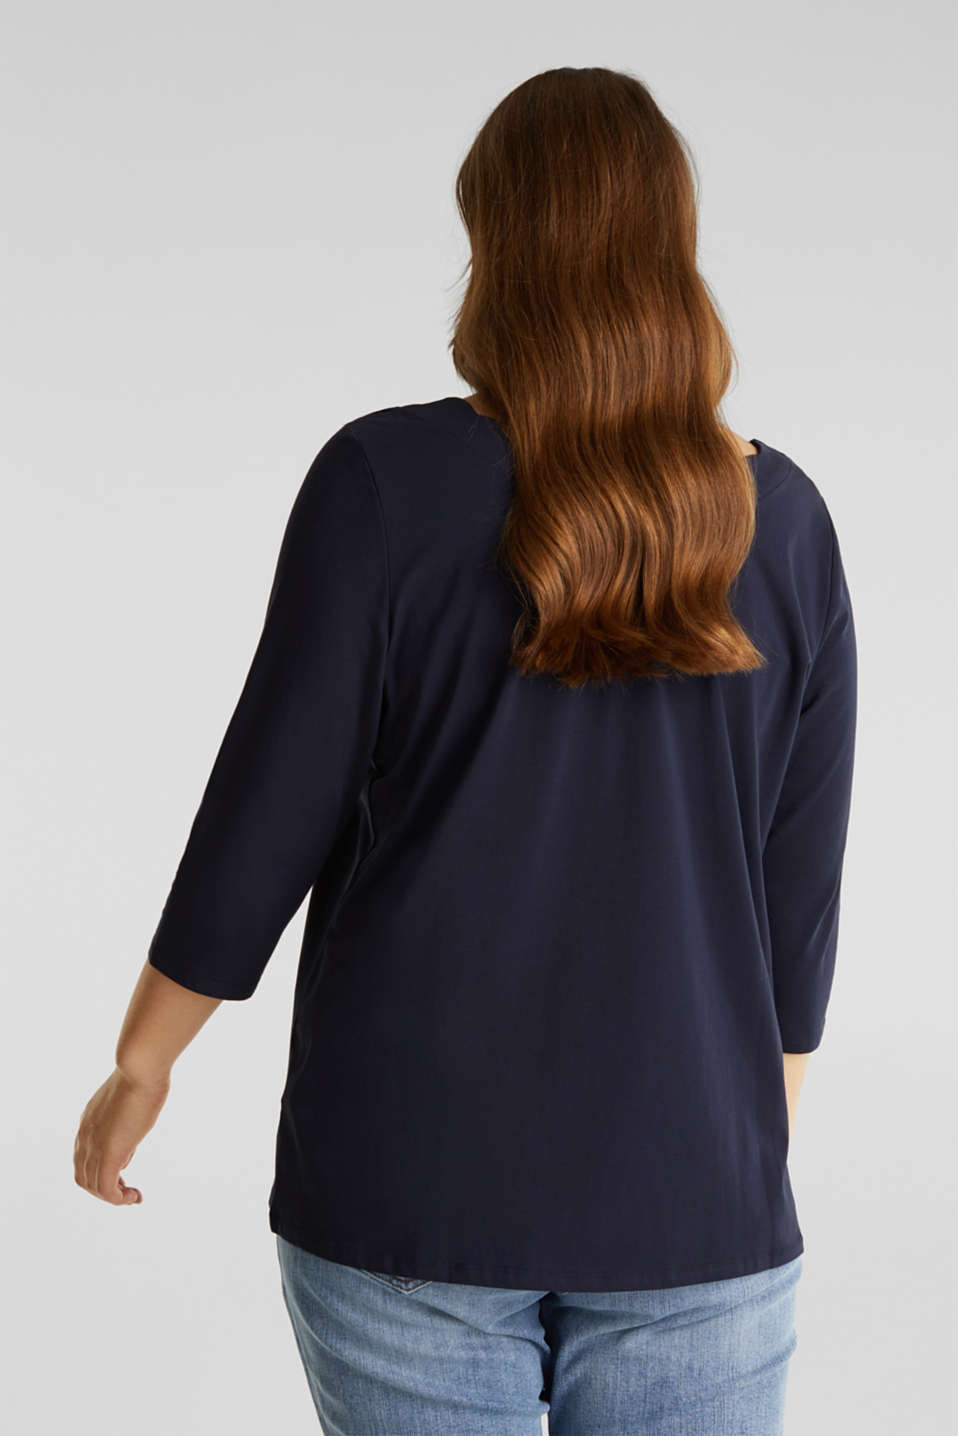 CURVY top with wavy details, NAVY, detail image number 3